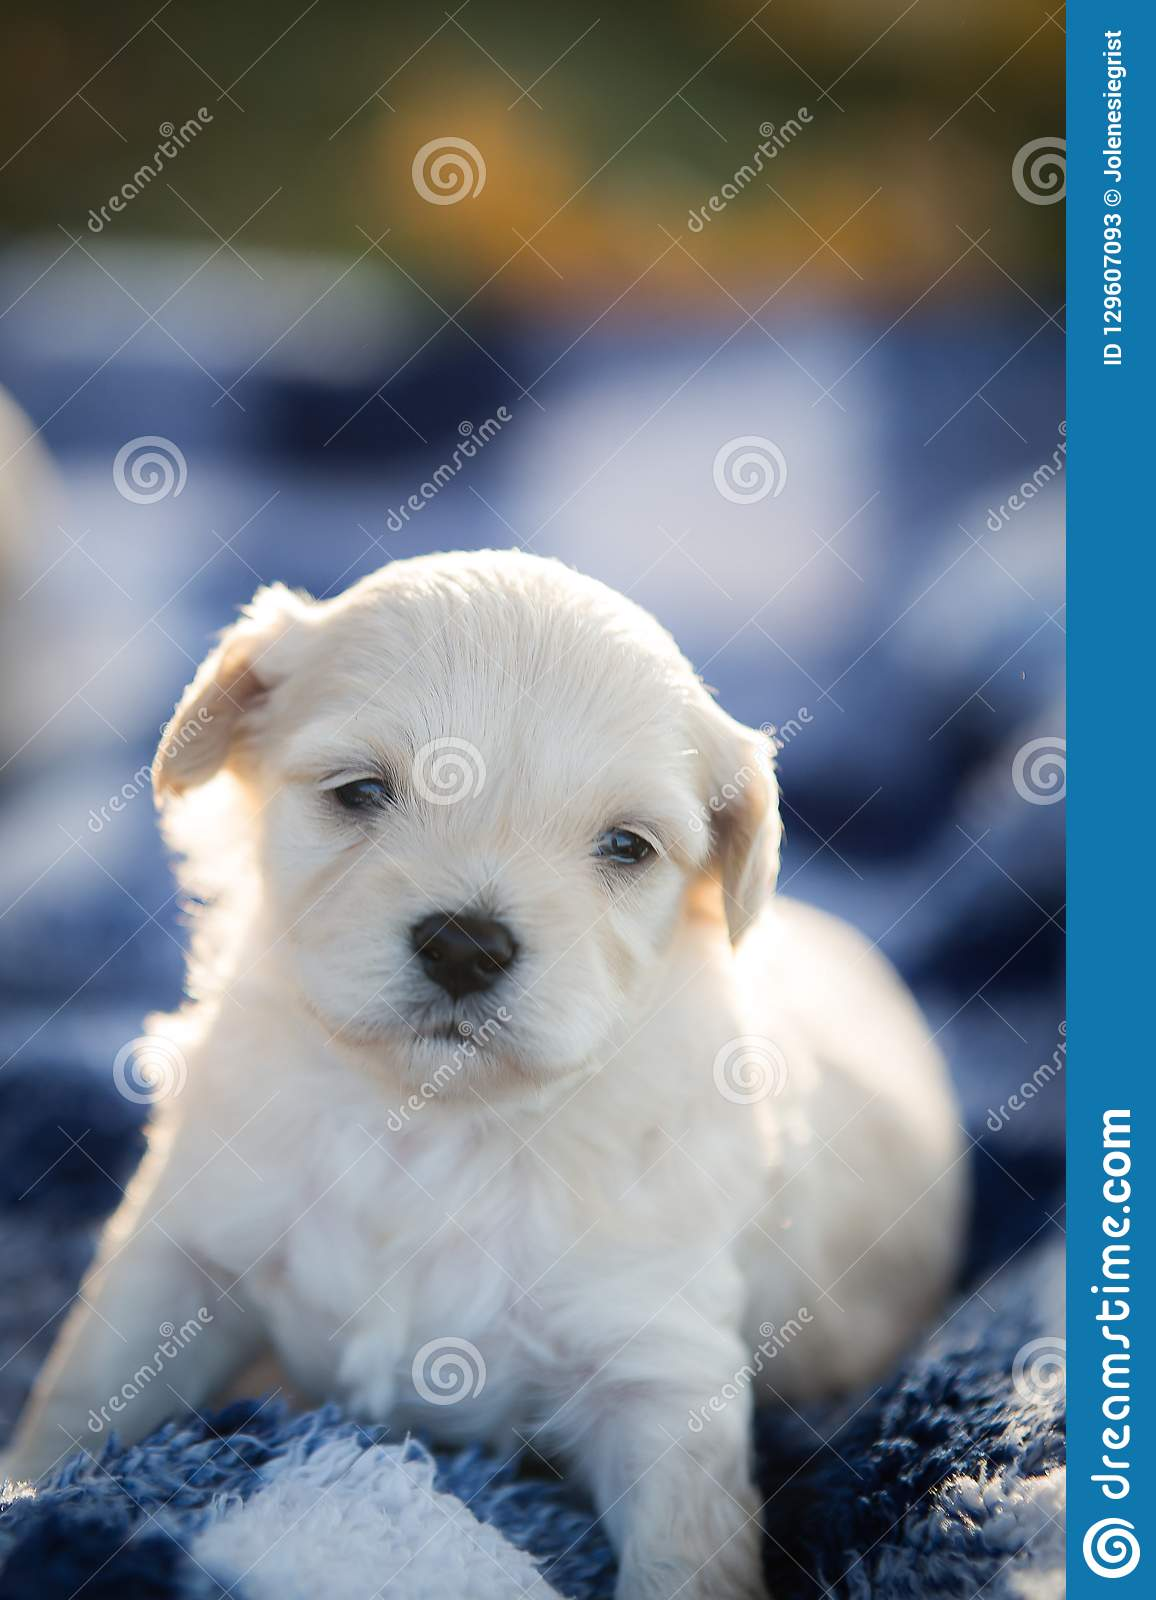 Cute little puppy sitting on a blue and white blanket